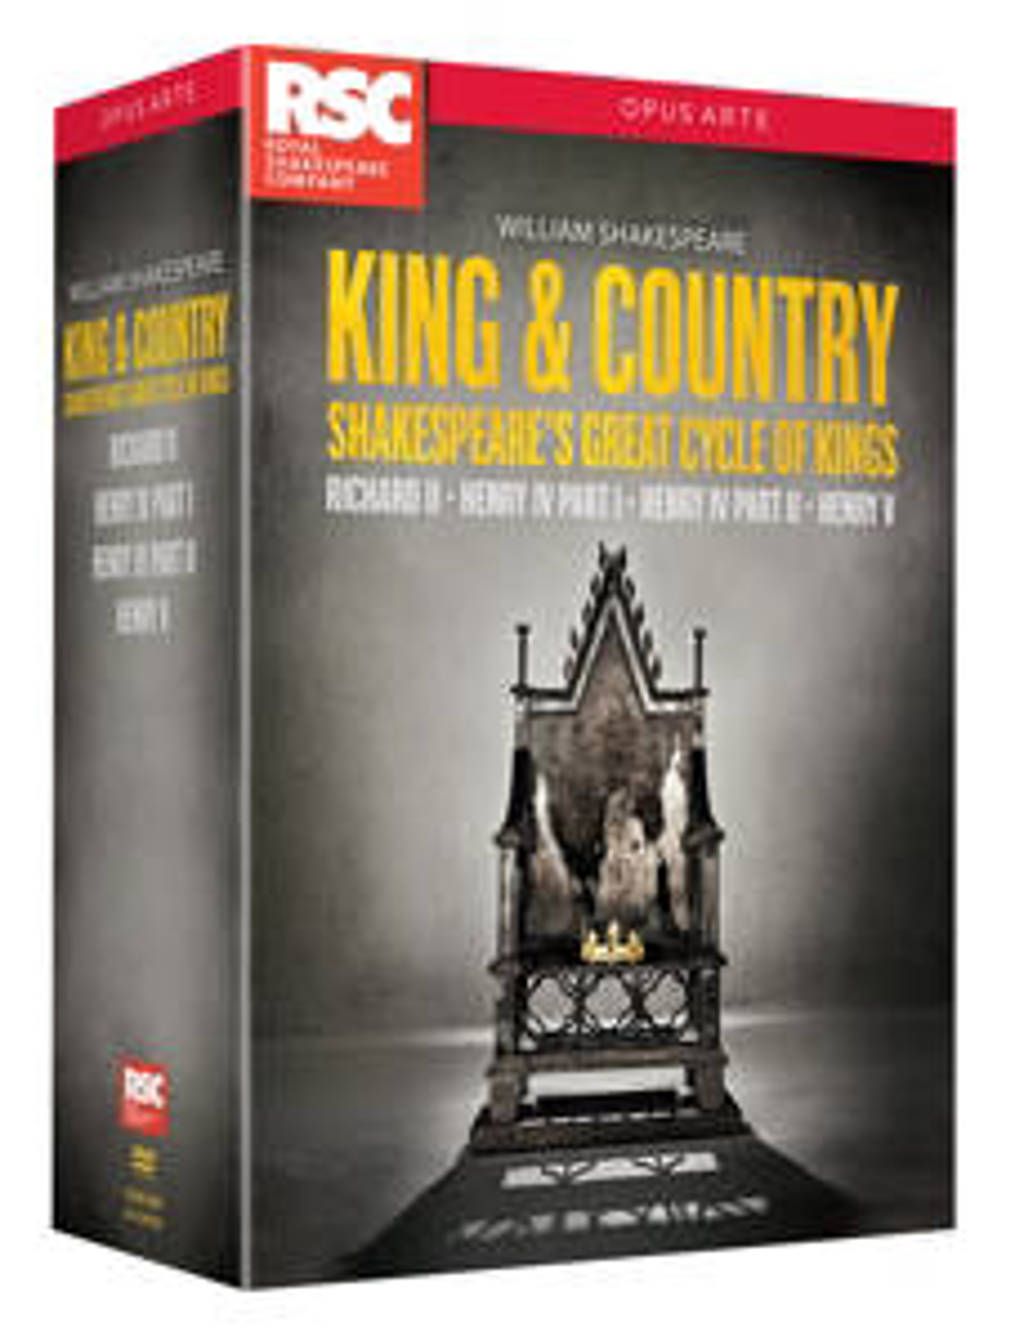 Royal Shakespeare Company - King & Country (DVD)